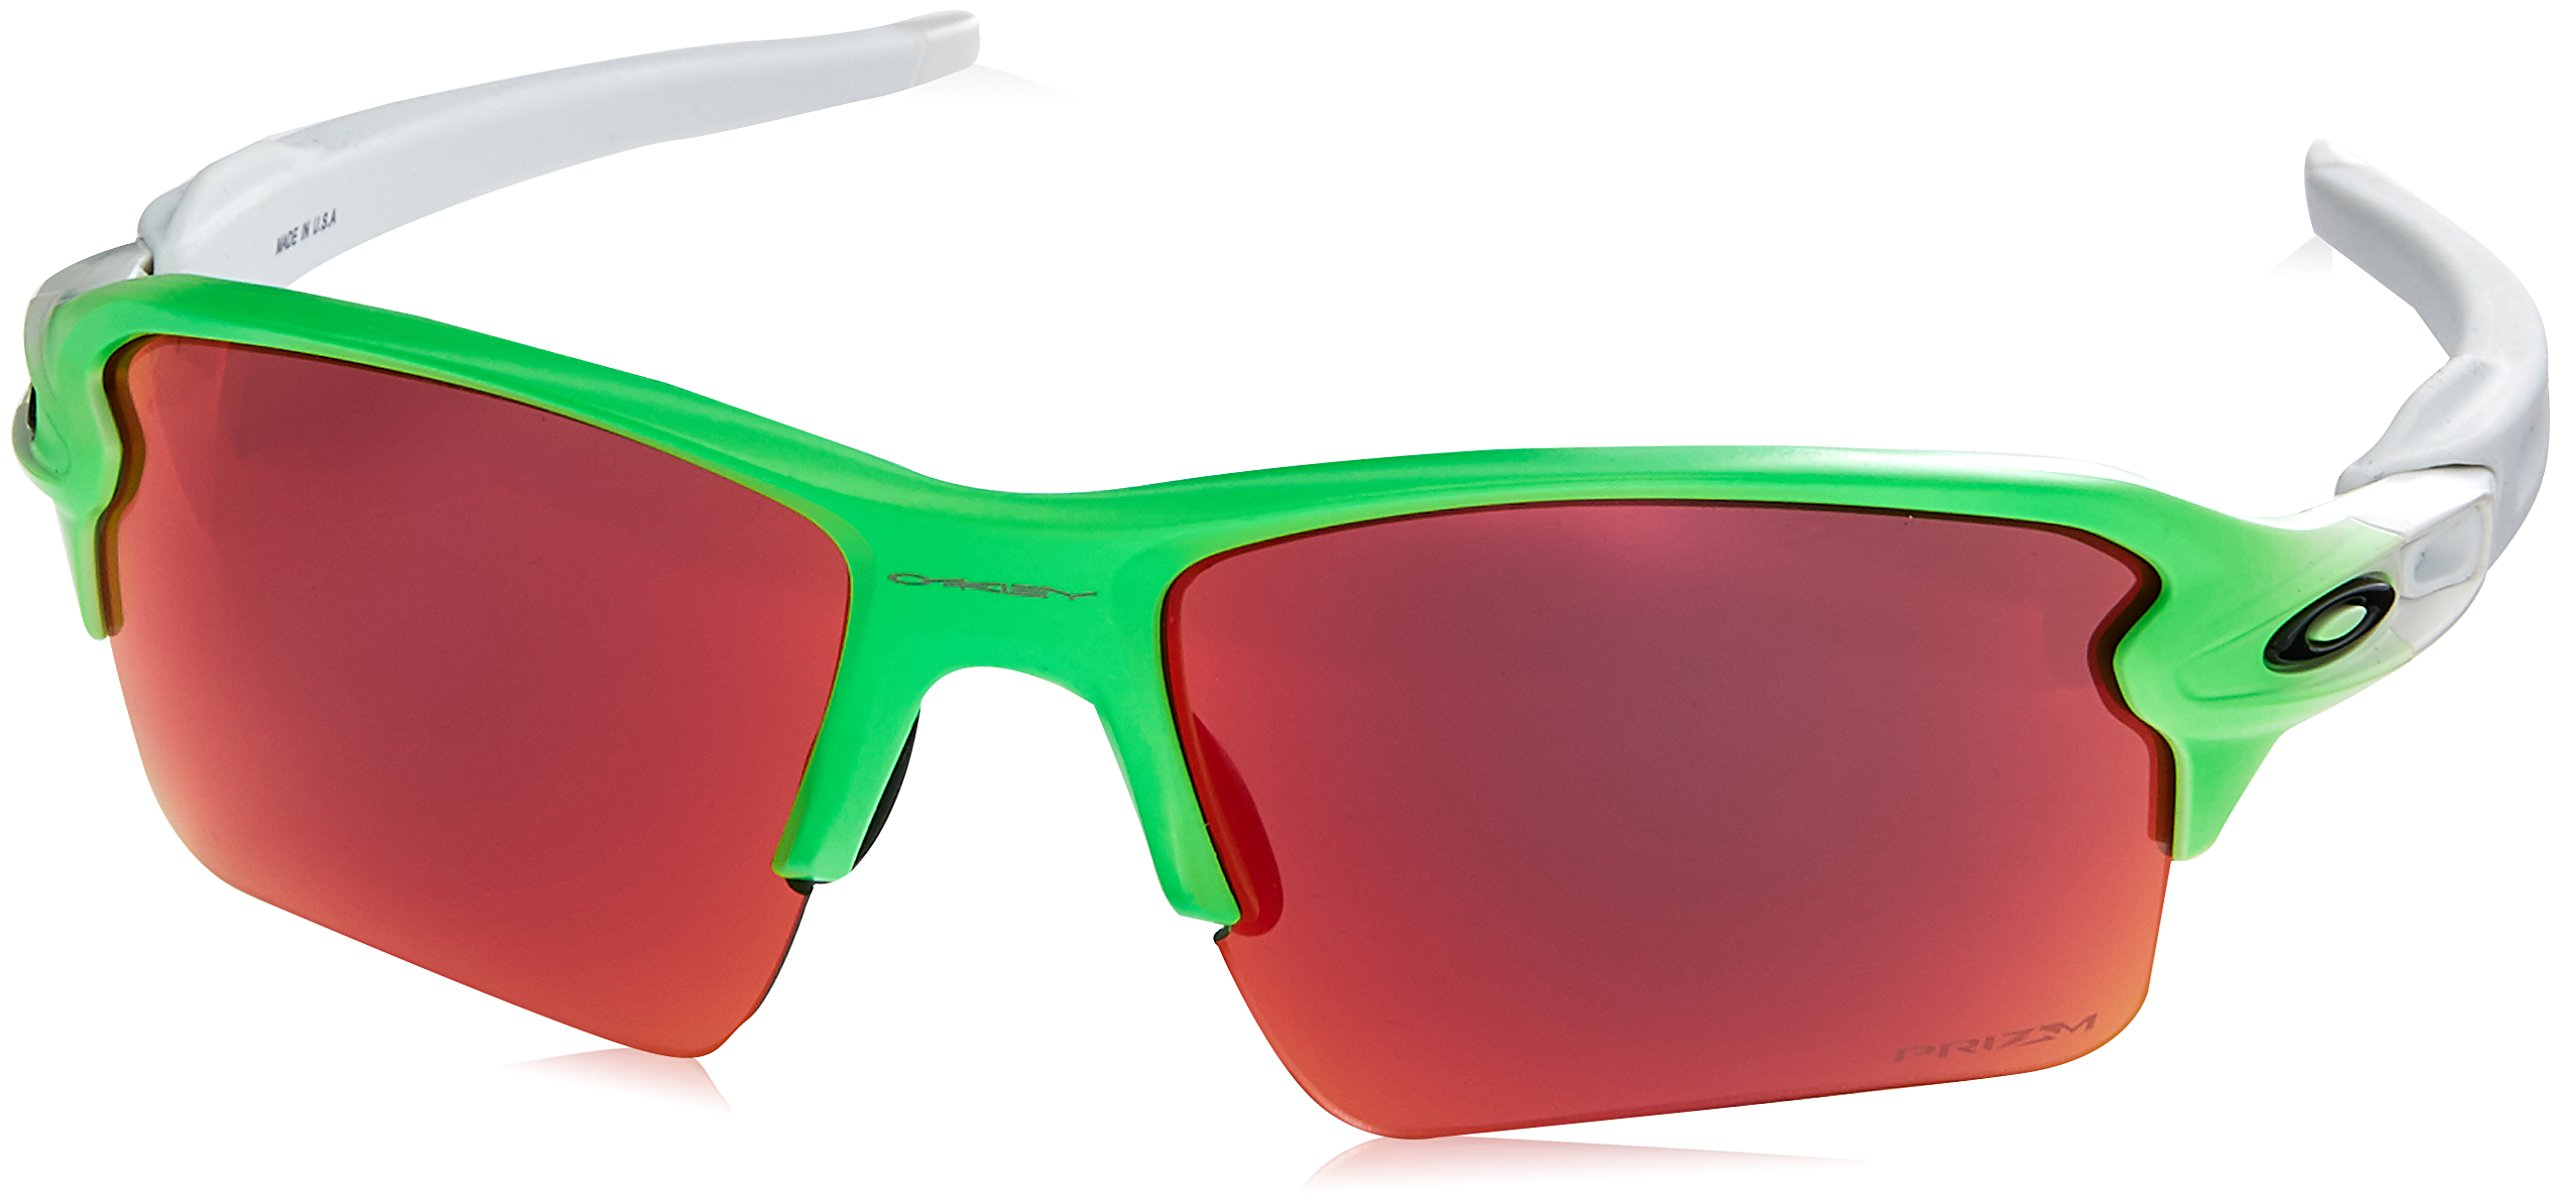 fada861d0b Get Quotations · Oakley Men s OO9188 Flak 2.0 XL Sunglasses